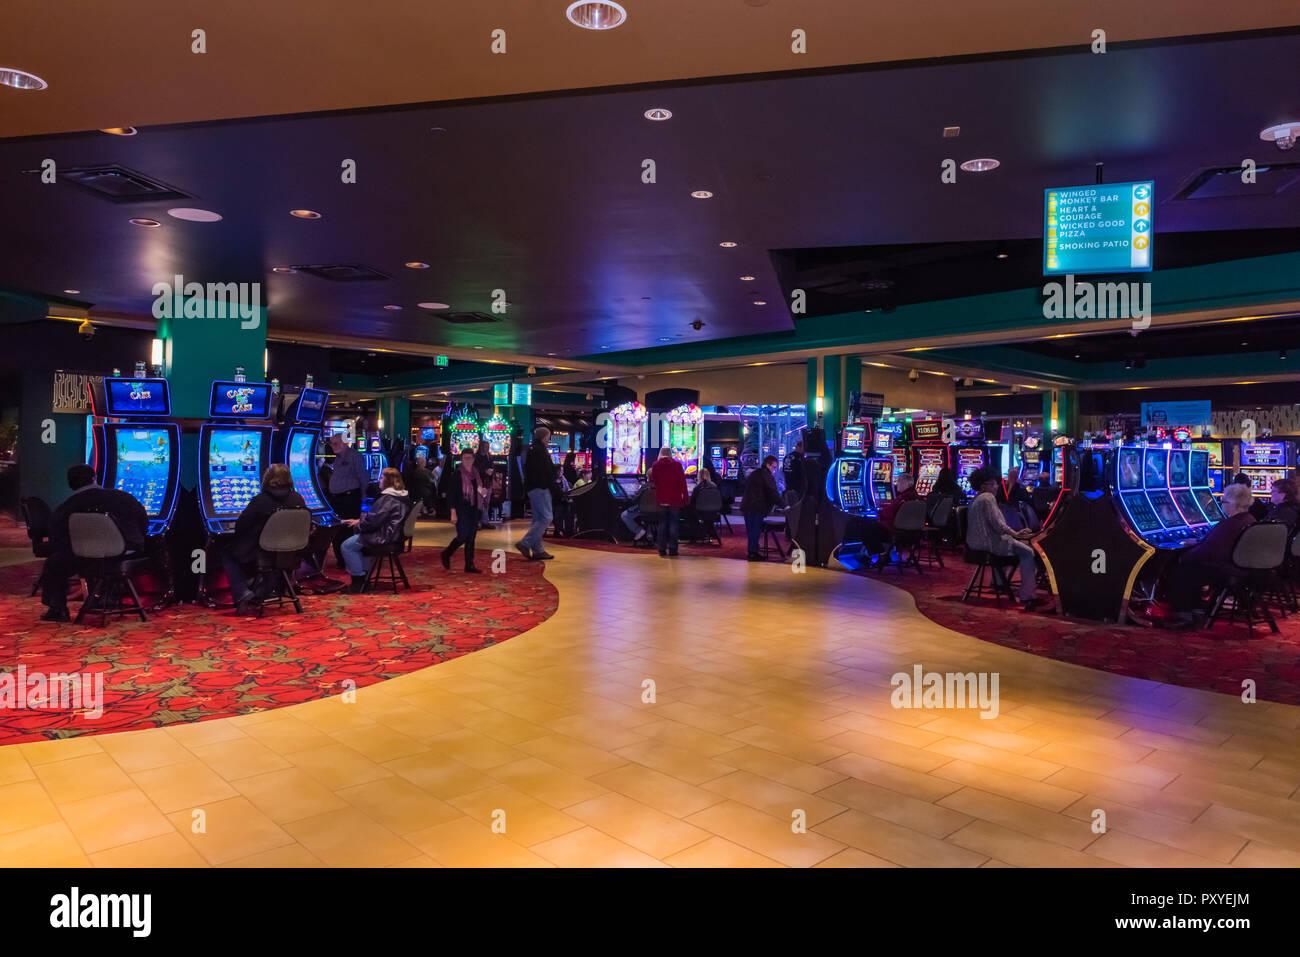 Interior shot of game tables and walkway at Yellow Brick Road Casino designed to celebrate 'The Wonderful Wizard of Oz' film in Chittenango, New York. - Stock Image